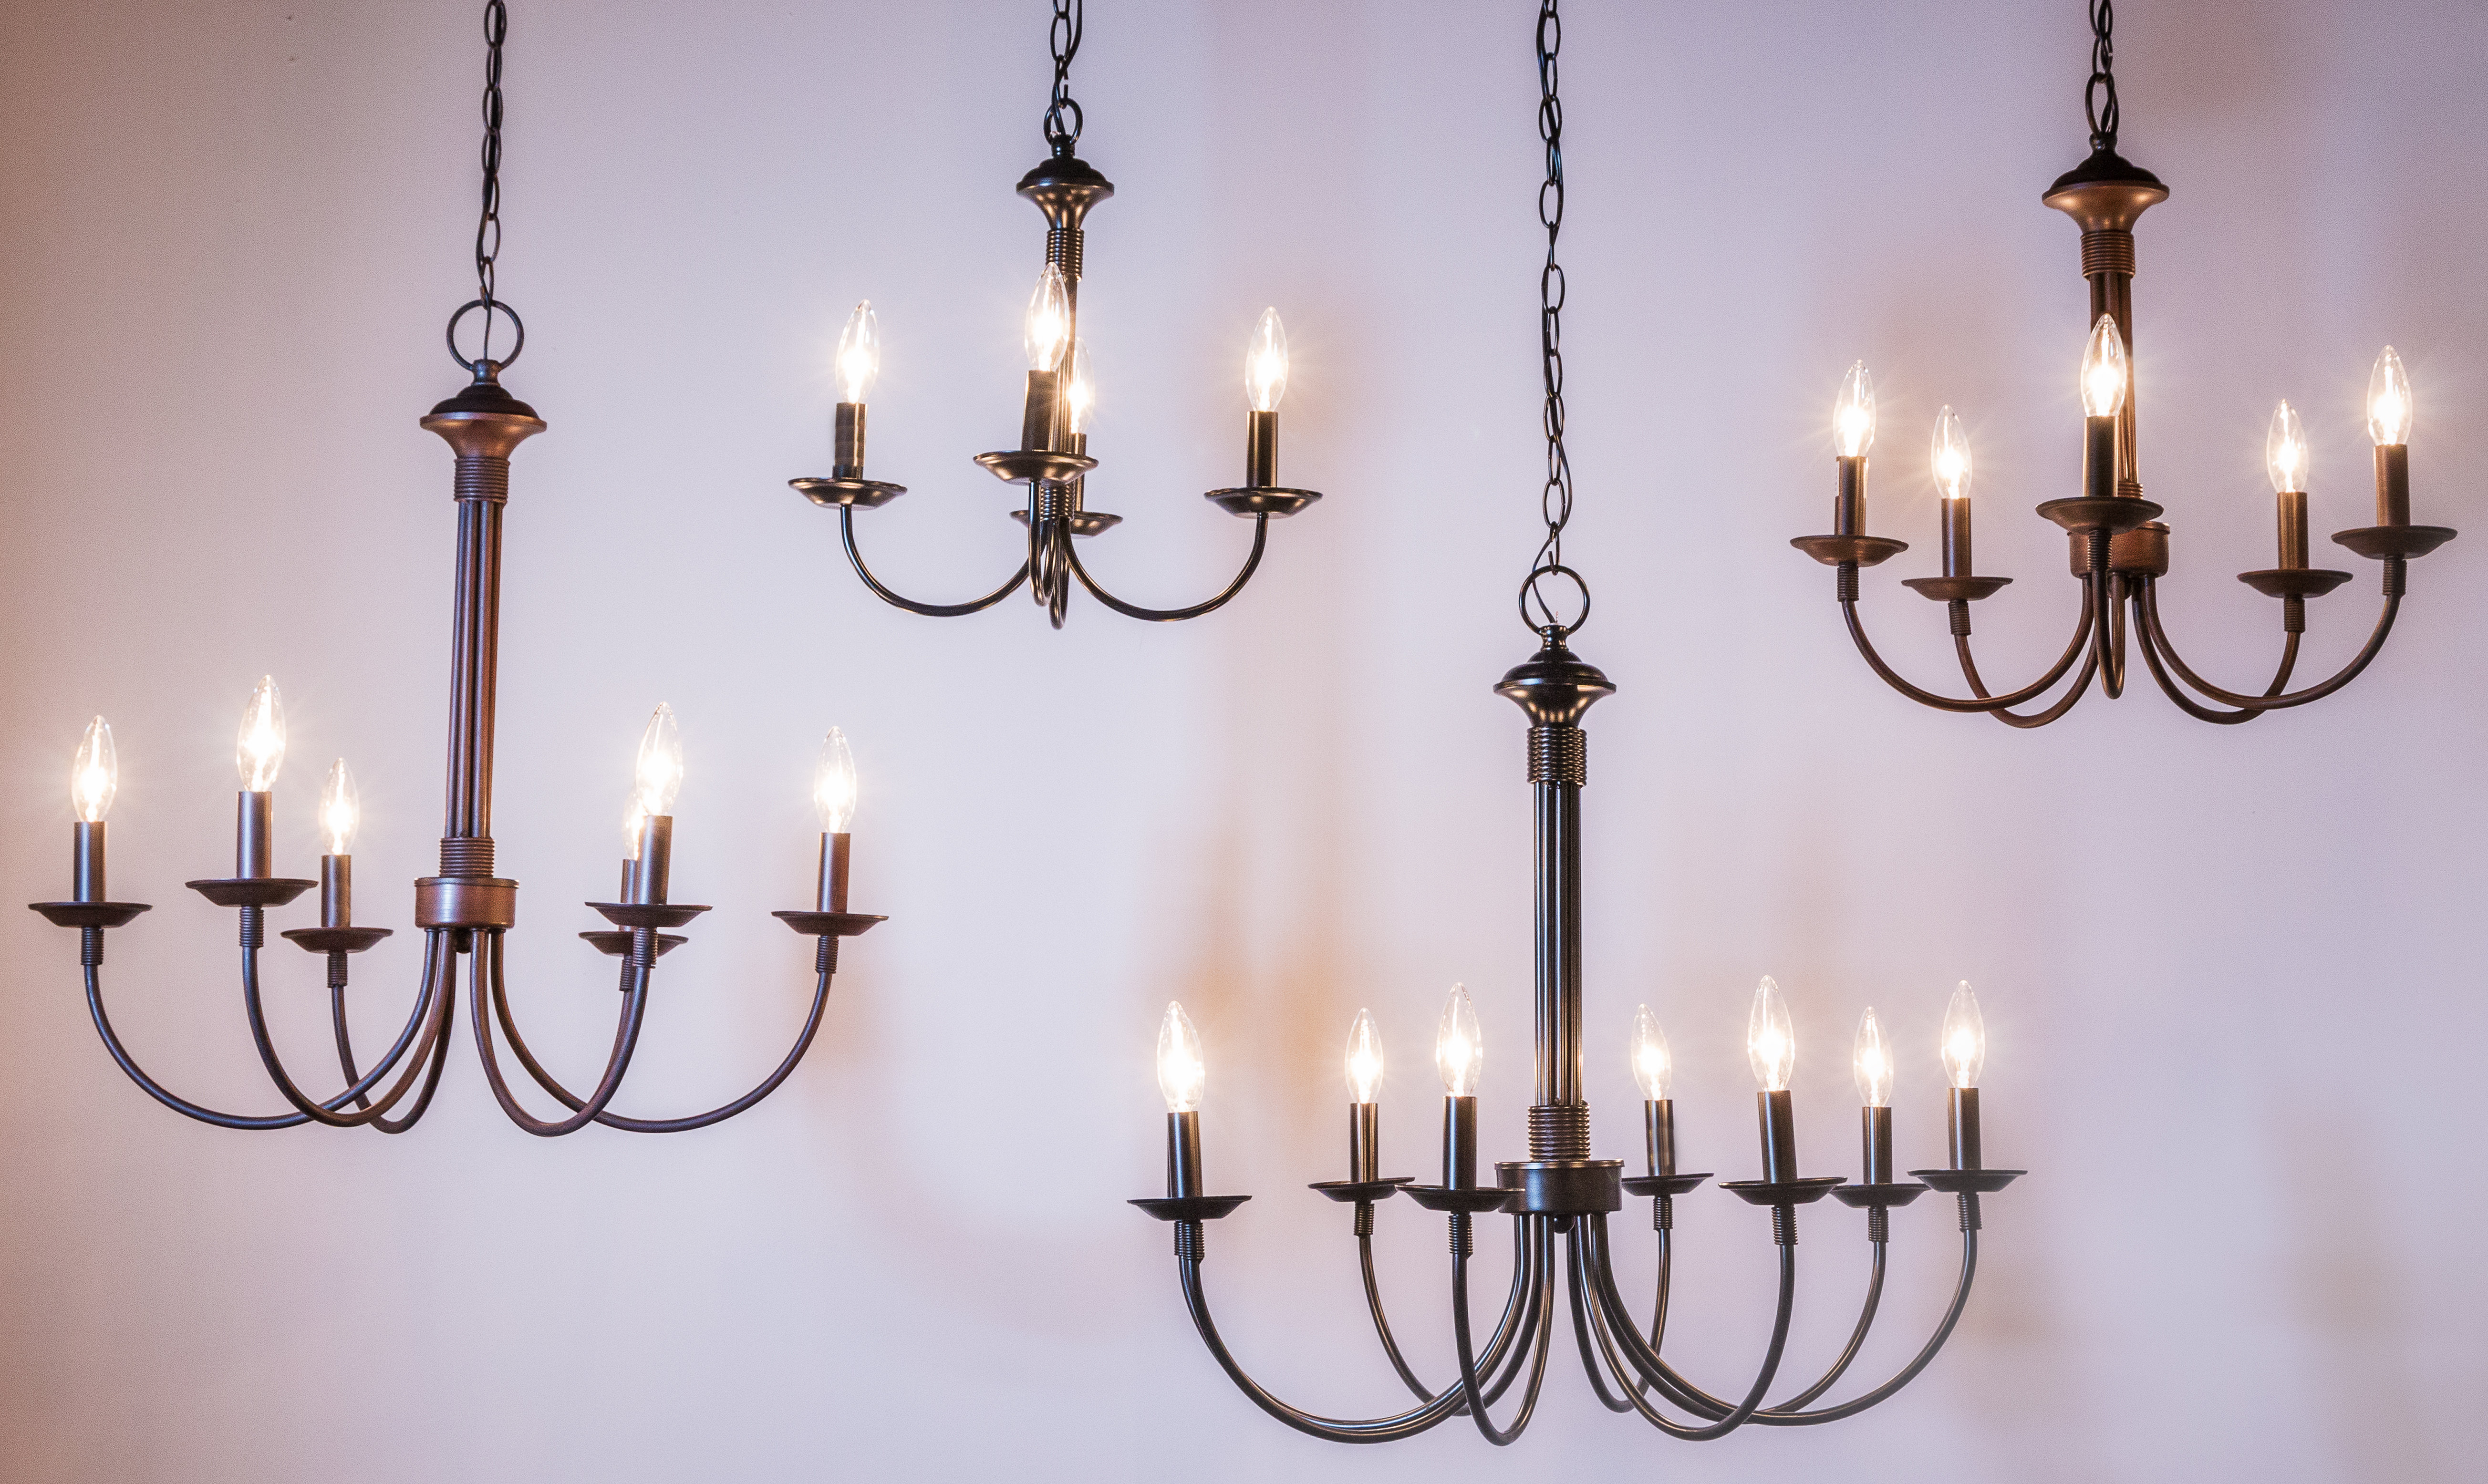 Most Recent Shaylee 5 Light Candle Style Chandelier With Regard To Shaylee 6 Light Candle Style Chandeliers (View 9 of 25)